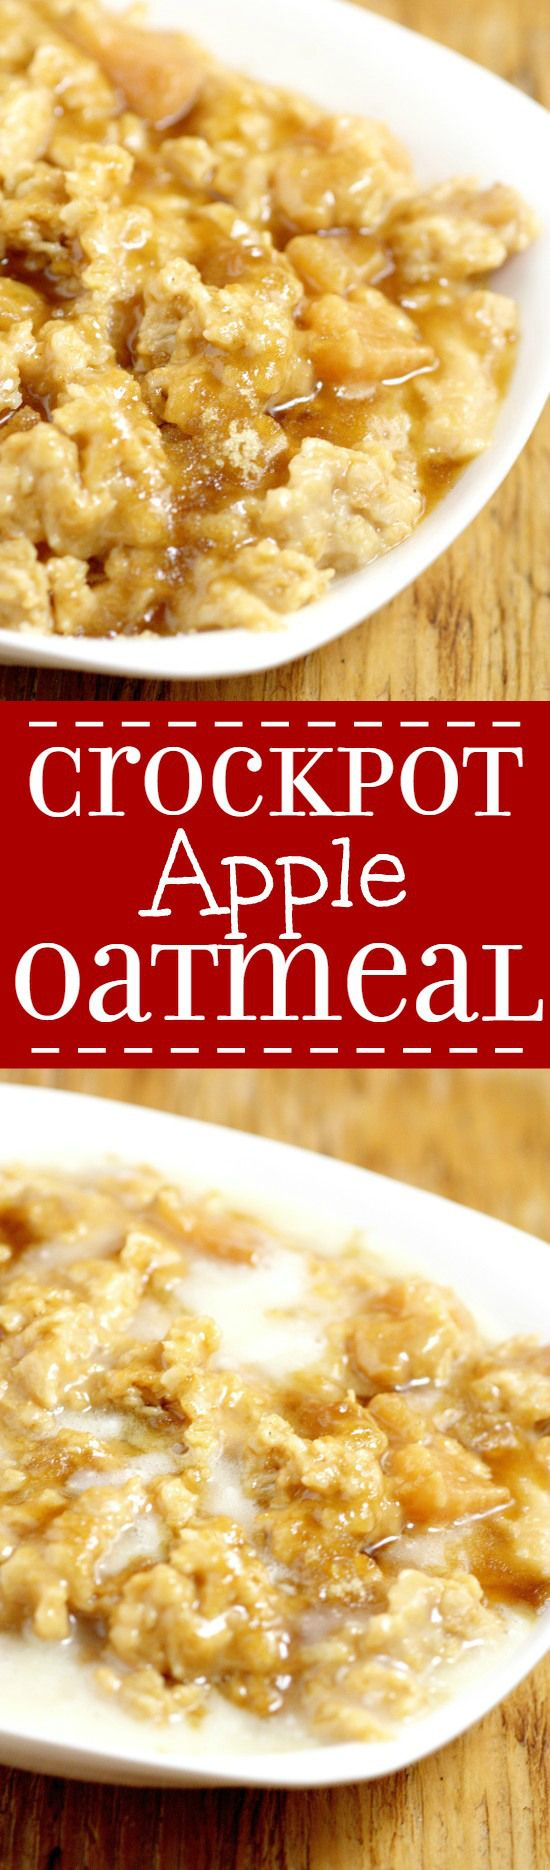 Overnight Crockpot Apple Oatmealrecipe with tangy apples, nutty oats, and sweet butter and powdered sugar glaze is a perfect overnight make ahead breakfast recipe for Fall and the holidays.